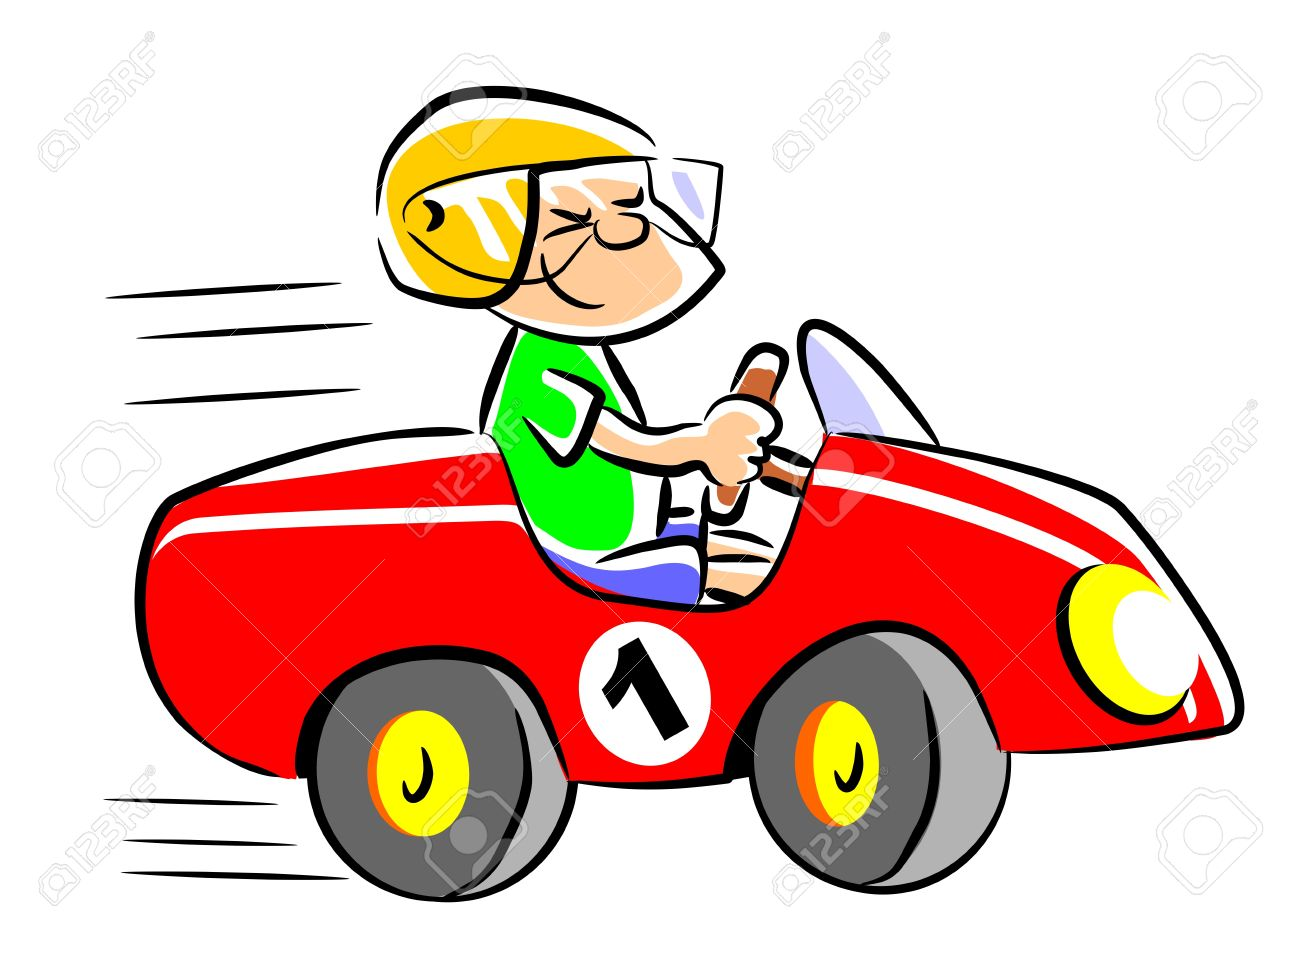 Speed racer clipart kids picture freeuse stock Little Boy Playing In His Pedal Car. Child Who Dreams Of Being ... picture freeuse stock